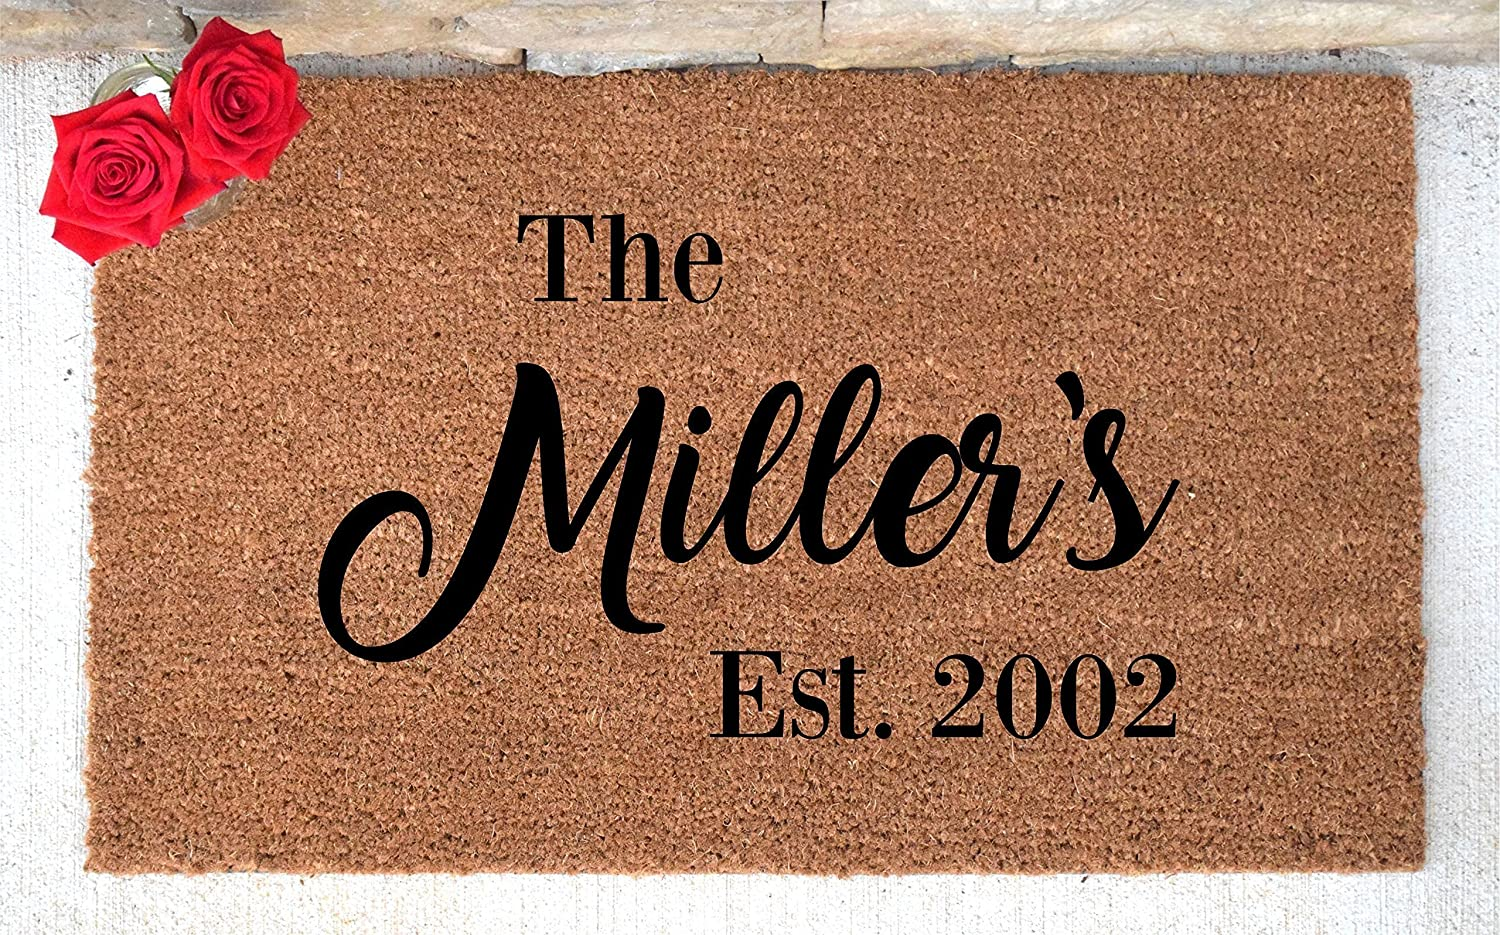 Personalized Doormat - Custom Doormat - Custom Last Name Doormat - Personalized Door mat - Personalized Welcome Mat - Hand Painted Door Mat